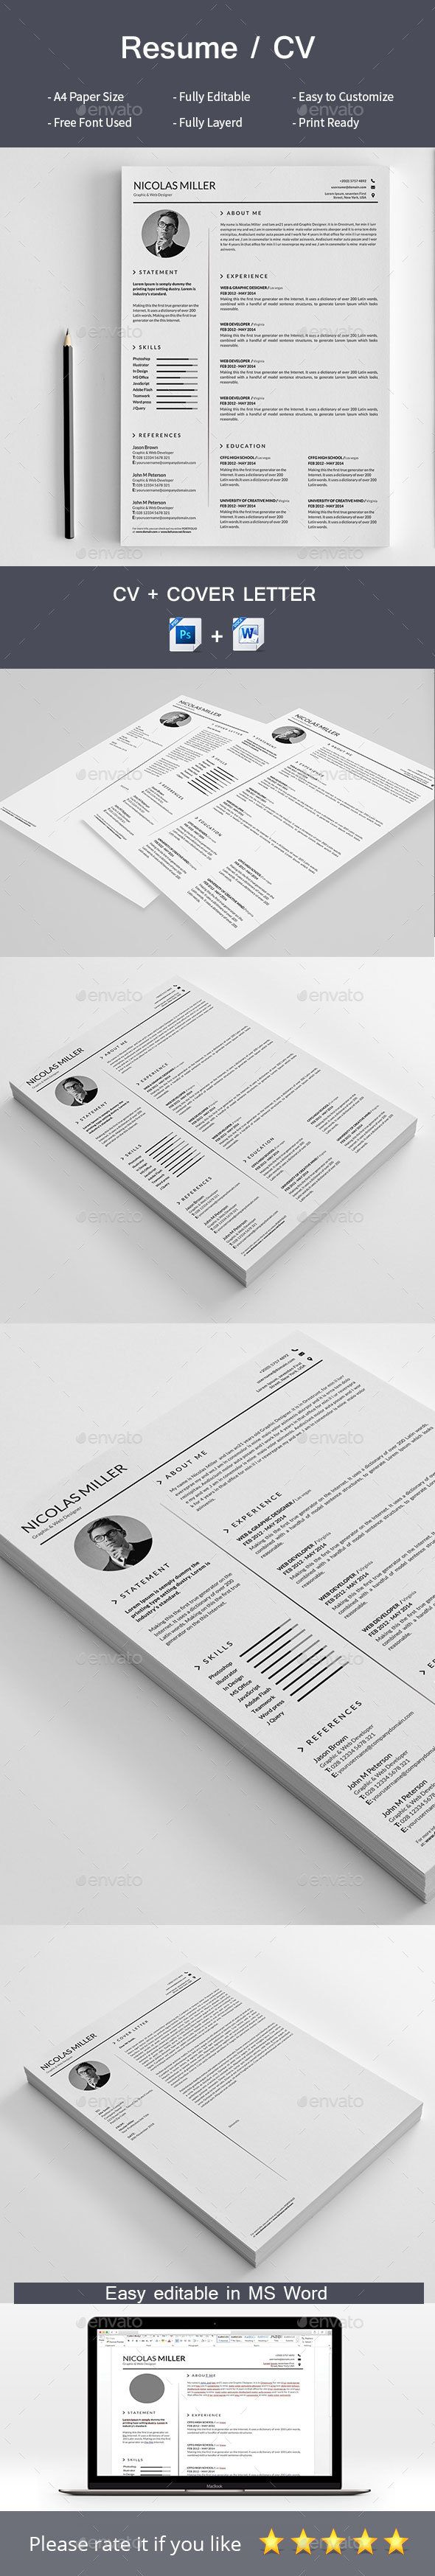 How To Make A Strong Resume Resume  Pinterest  Template Resume Cv And Simple Resume Template